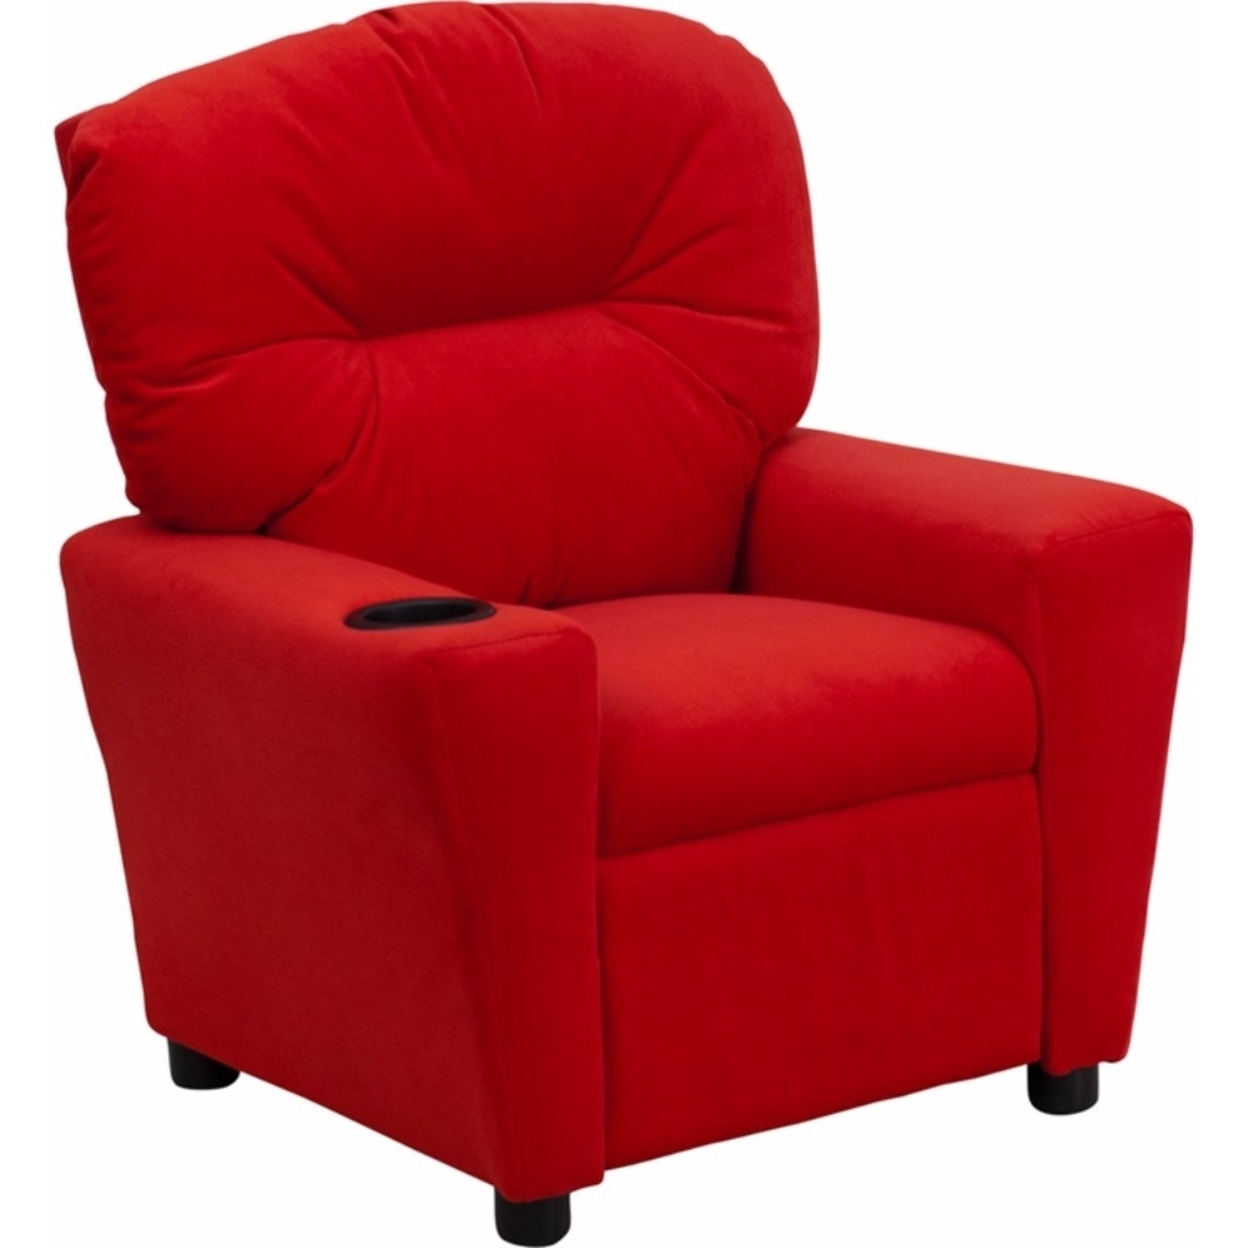 Flash Furniture Contemporary Red Microfiber Kids Recliner with Cup Holder [863-Bt-7950-Kid-Mic-Red-Gg] 59e46012e224613cbd384382